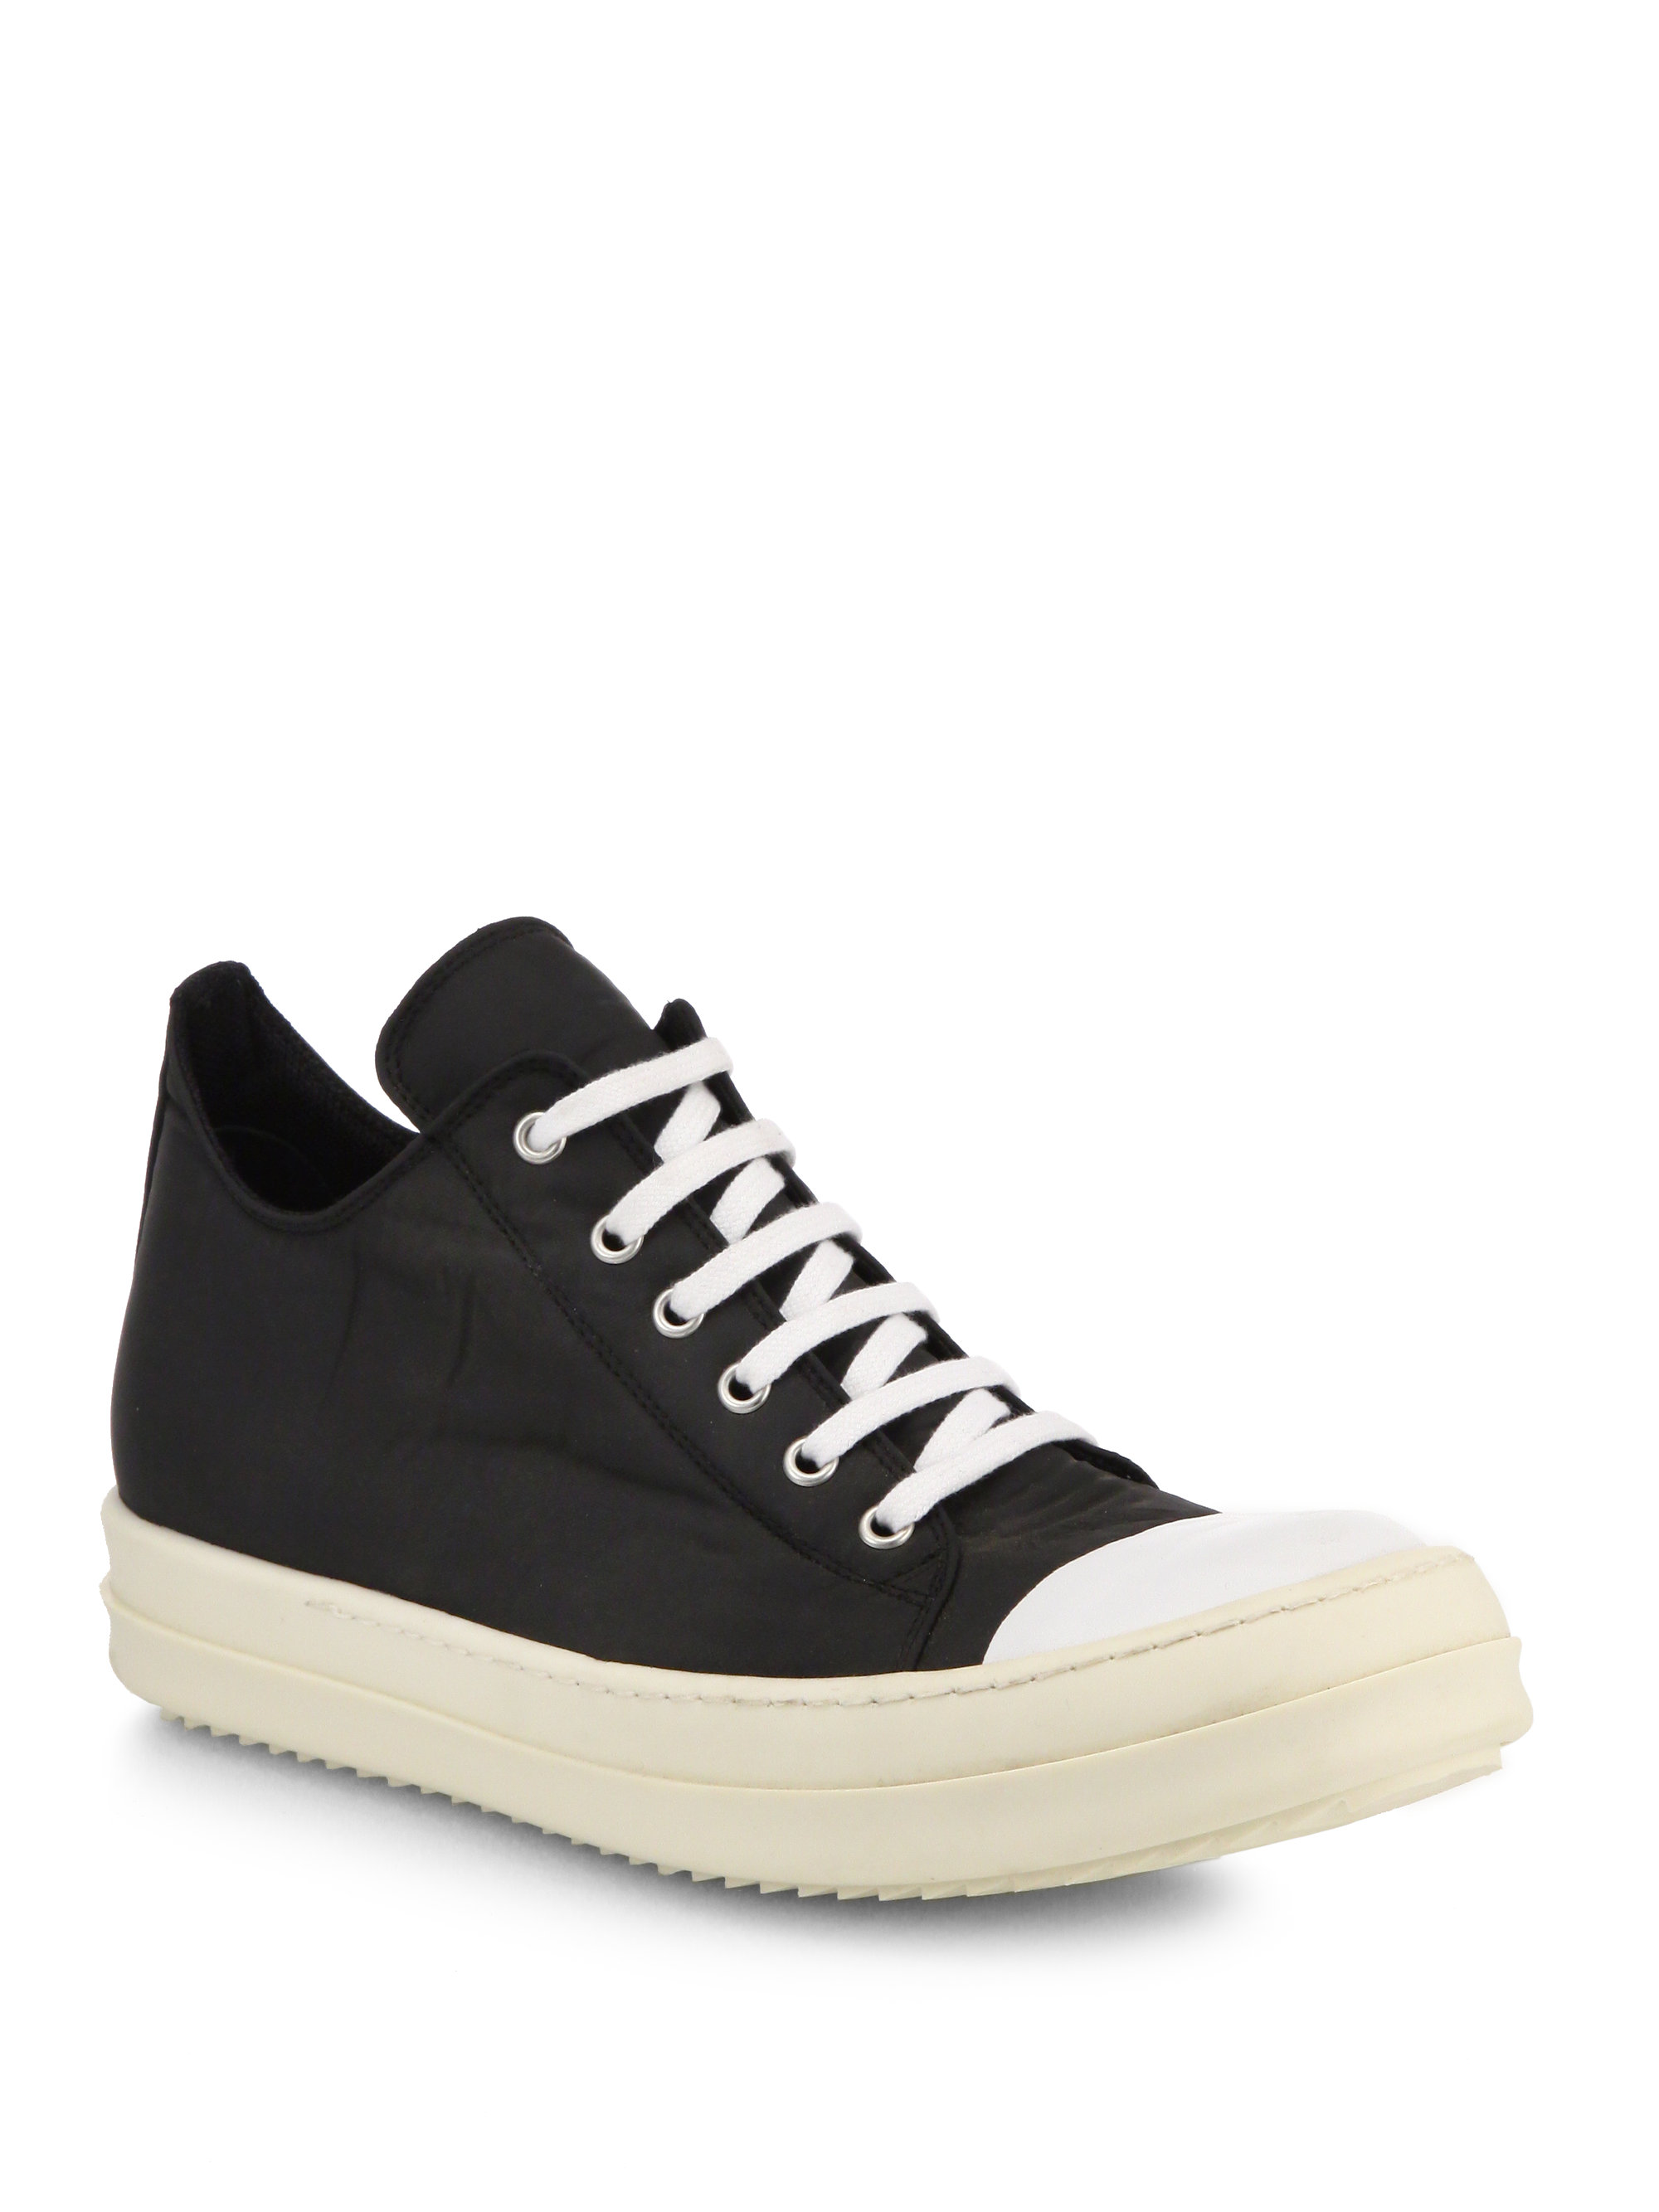 1442239e1853a4 Lyst - DRKSHDW by Rick Owens Ramones Canvas Lowtop Sneakers in Black